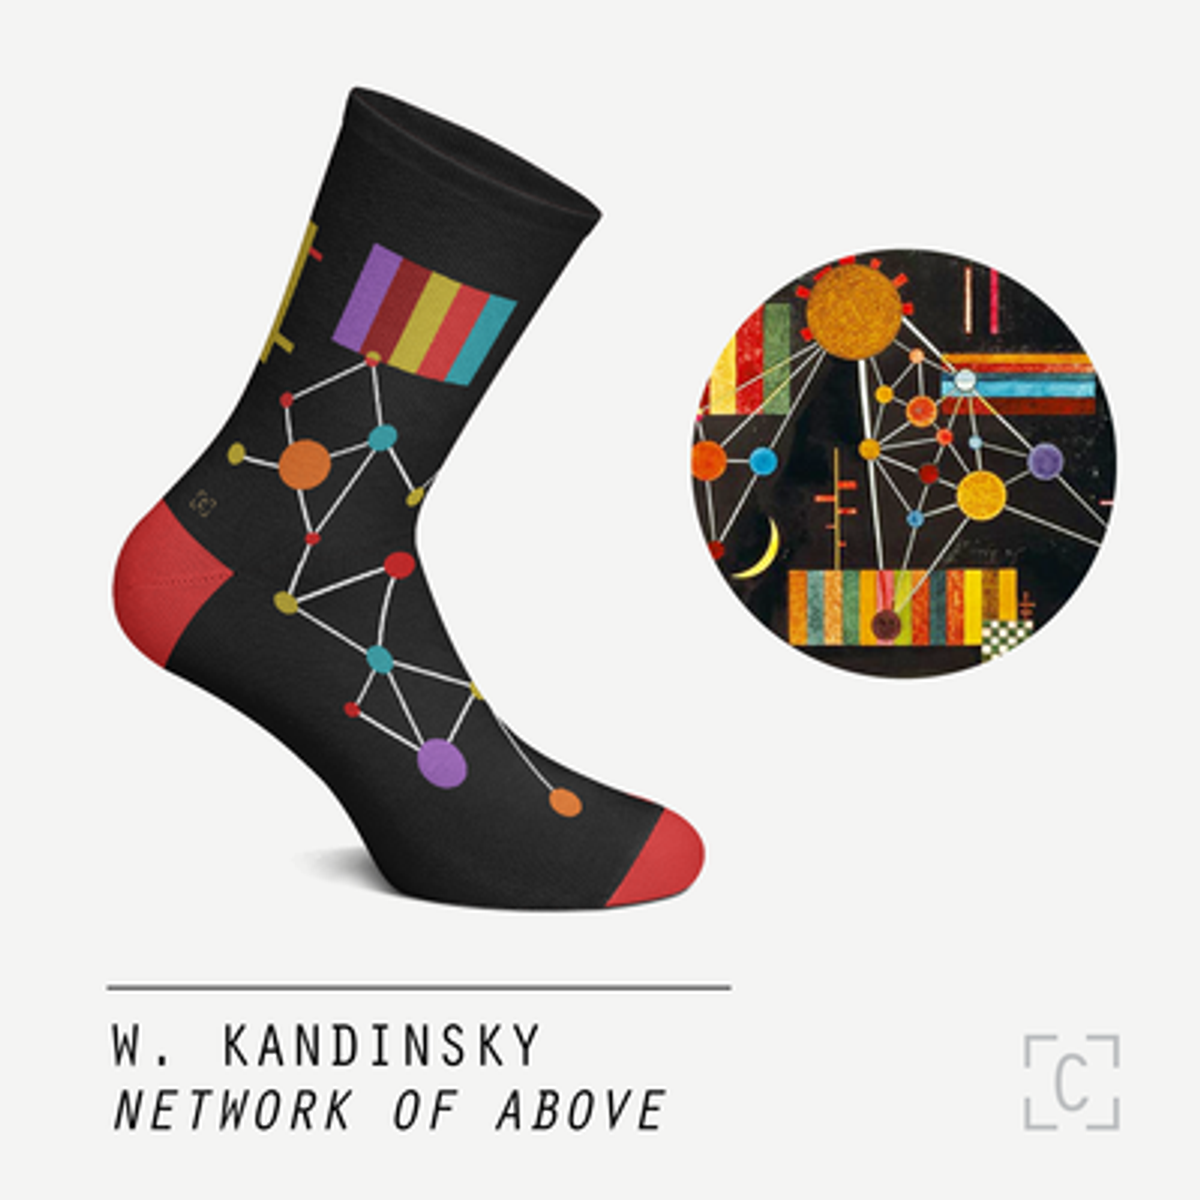 Visual_Merch_Network_of_Above_01_400x